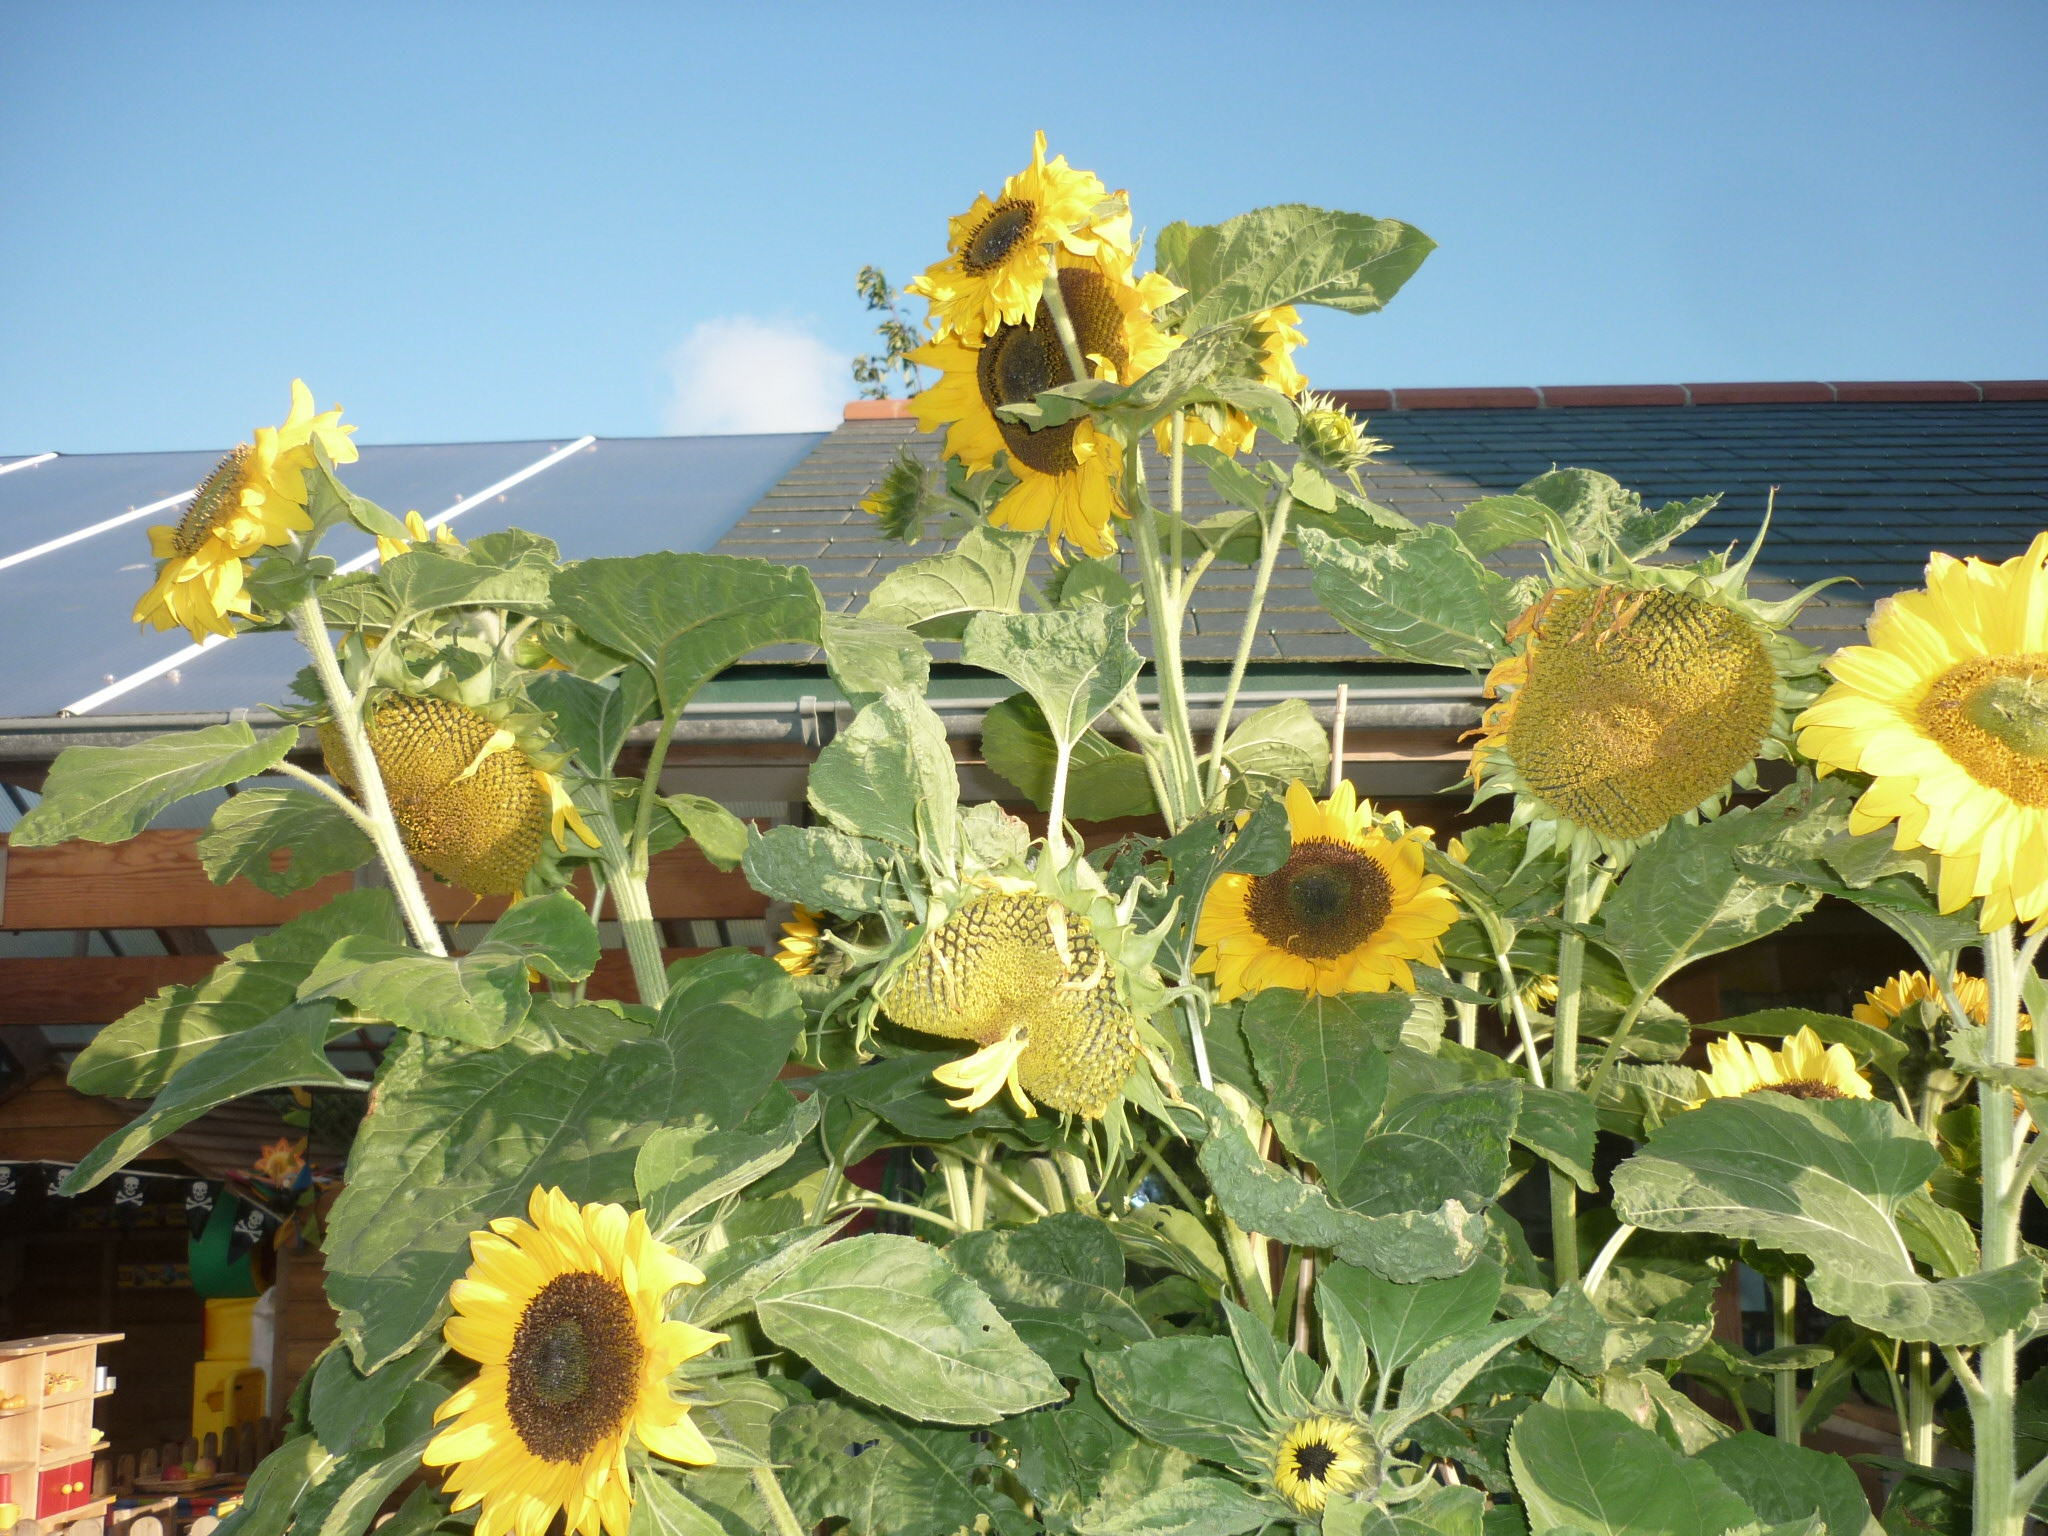 Sunflowers grown from seed